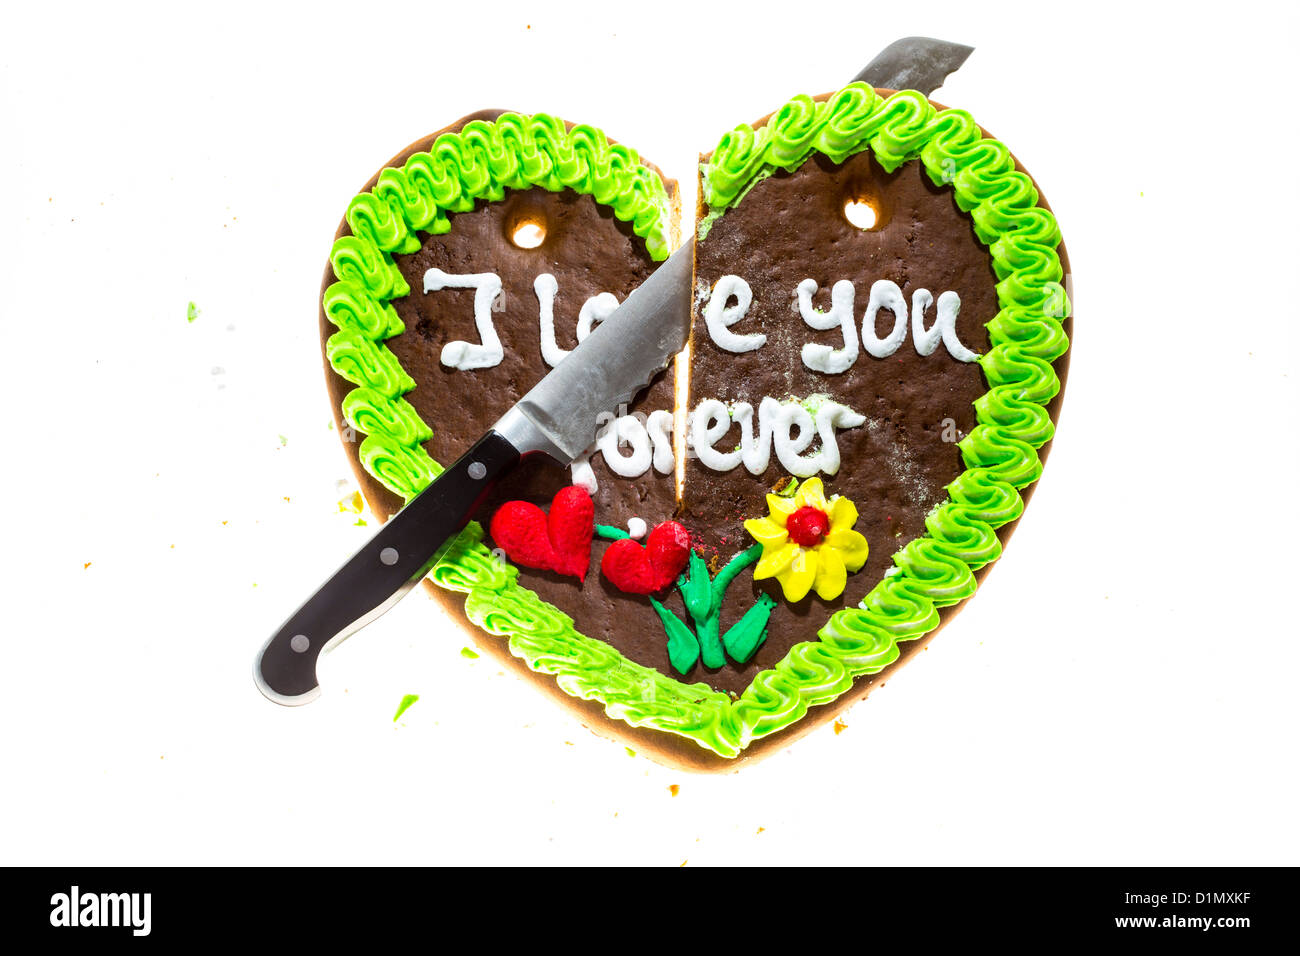 Gingerbread Heart Cut Into Two Pieces Symbol For Finished Love